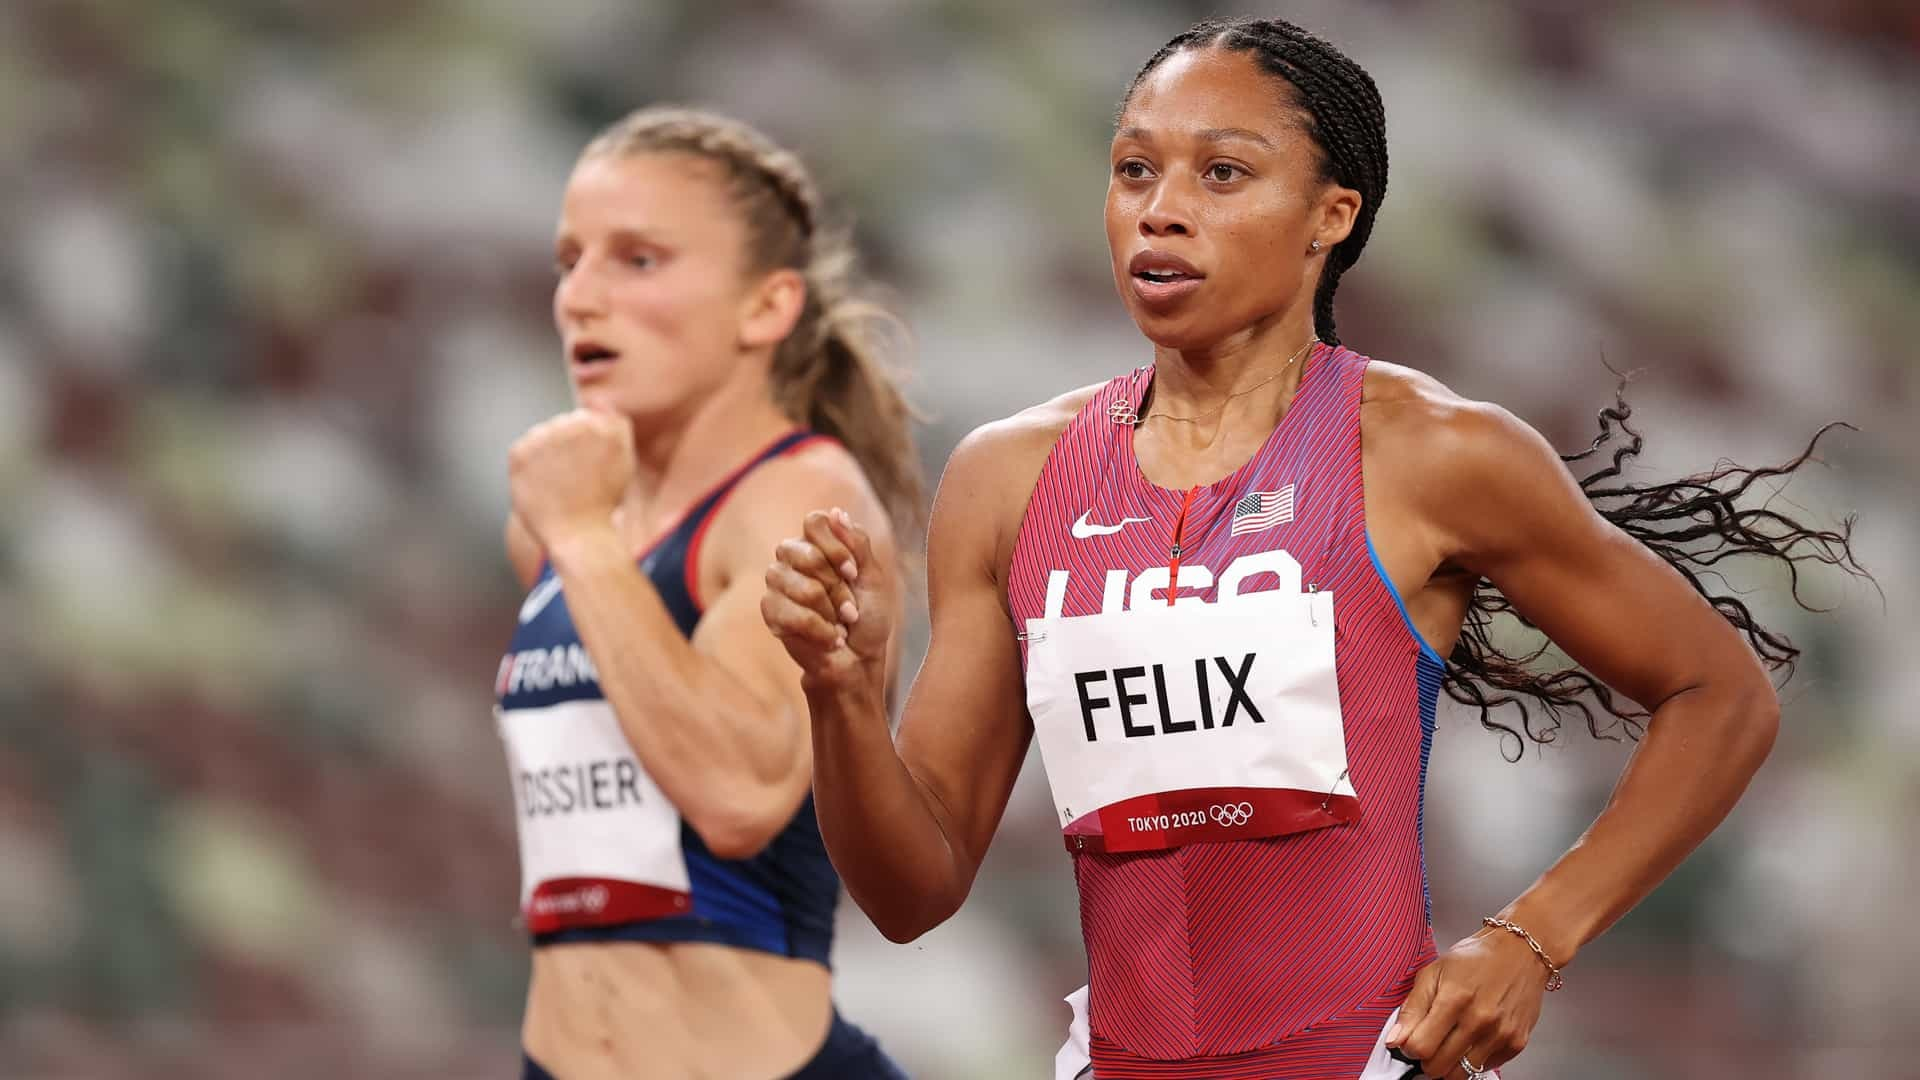 Allyson Felix competes in the women's 400m track and field semifinals